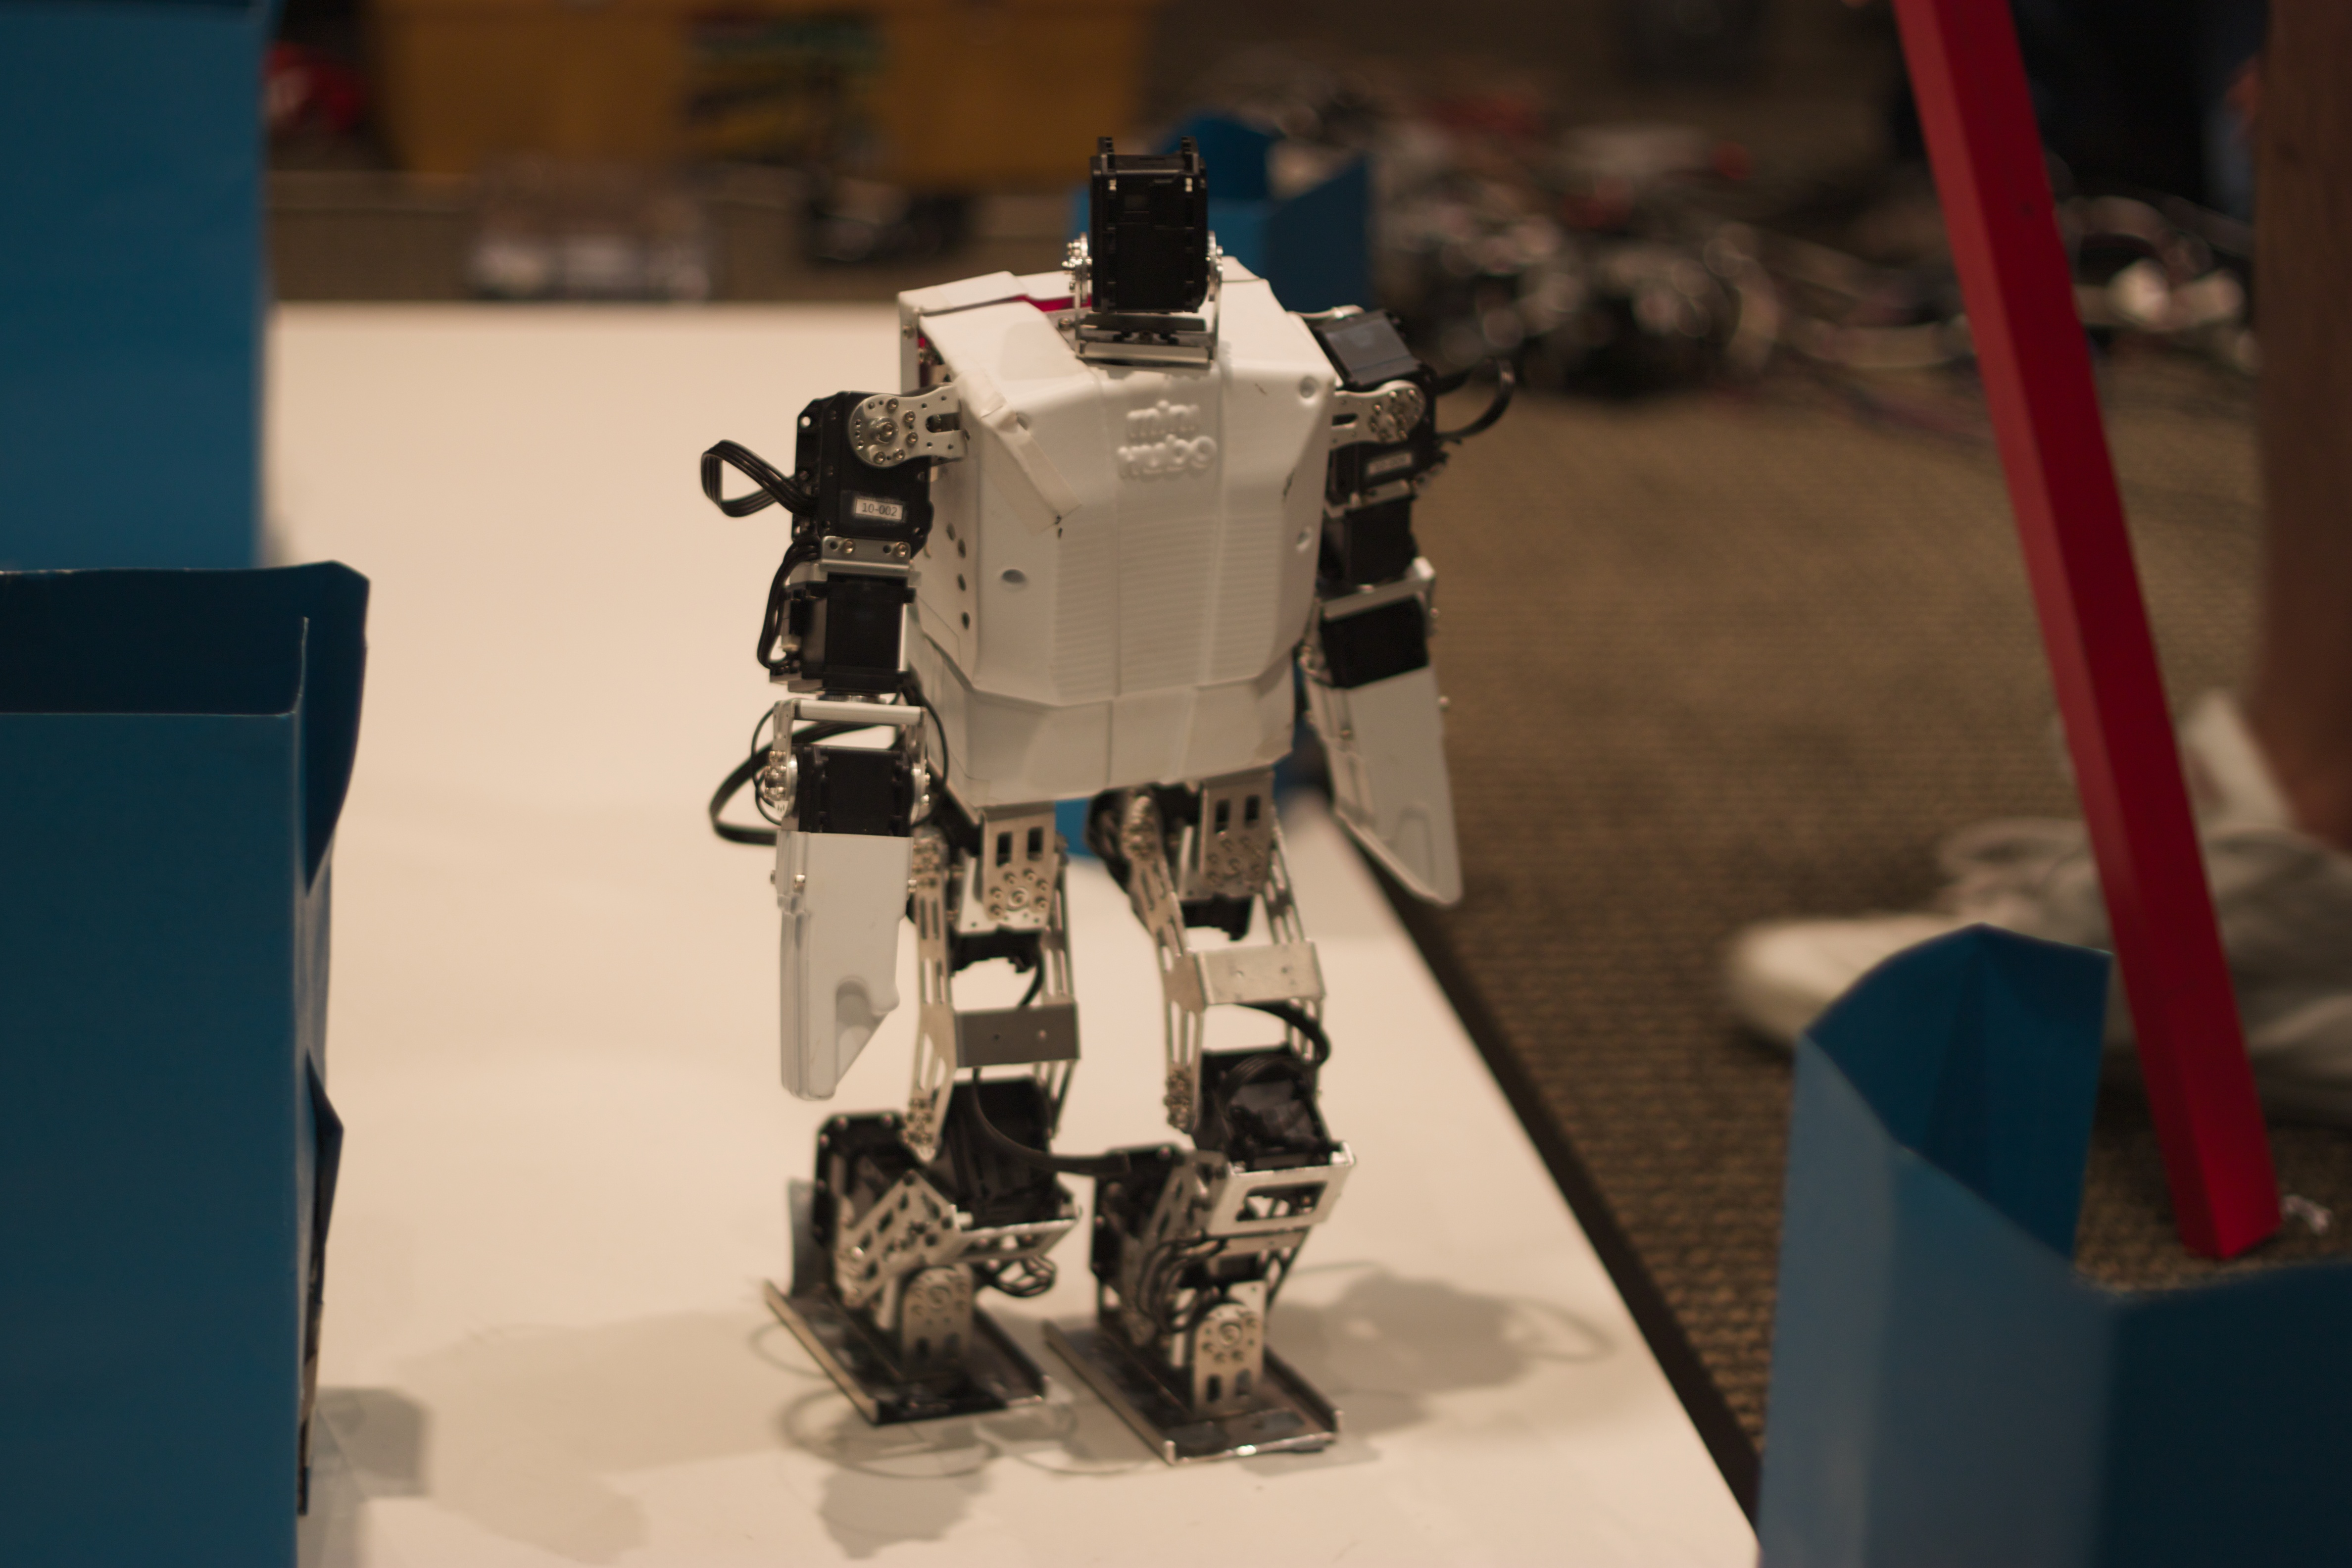 Lego Construction Robot Humanoid Robot Constructed